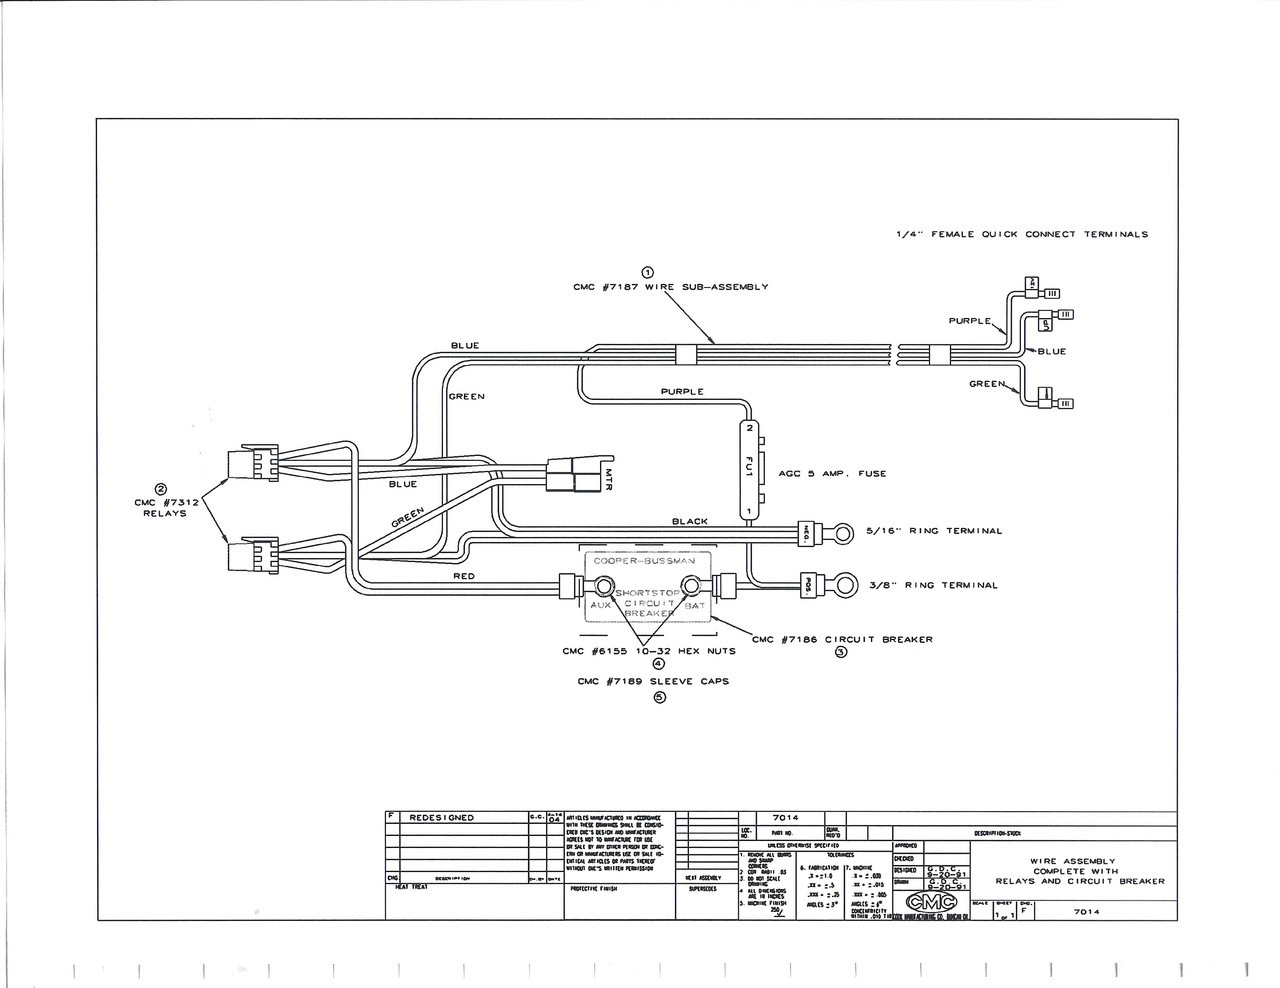 wire assembly cmc 7014g cmc tilt and trim wiring harness cmc wiring harness [ 1280 x 988 Pixel ]